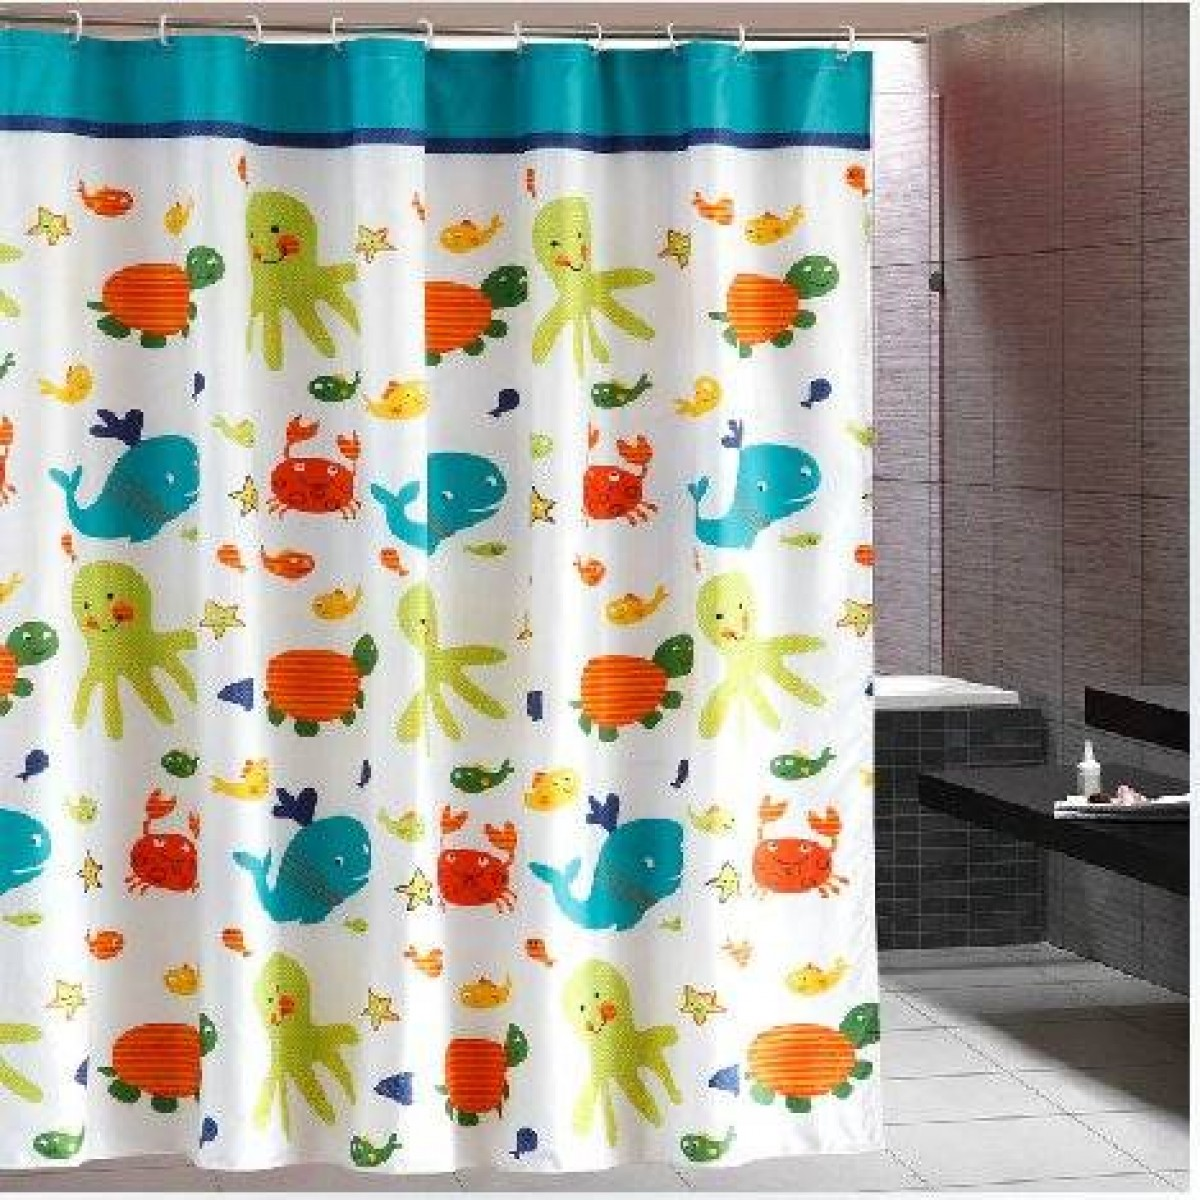 Eforgift Printed Animals Tortoise Fish Waterproof And Non Mildew Curtains Fabric Bathroom Shower Curtain 72 Inch Multi Color